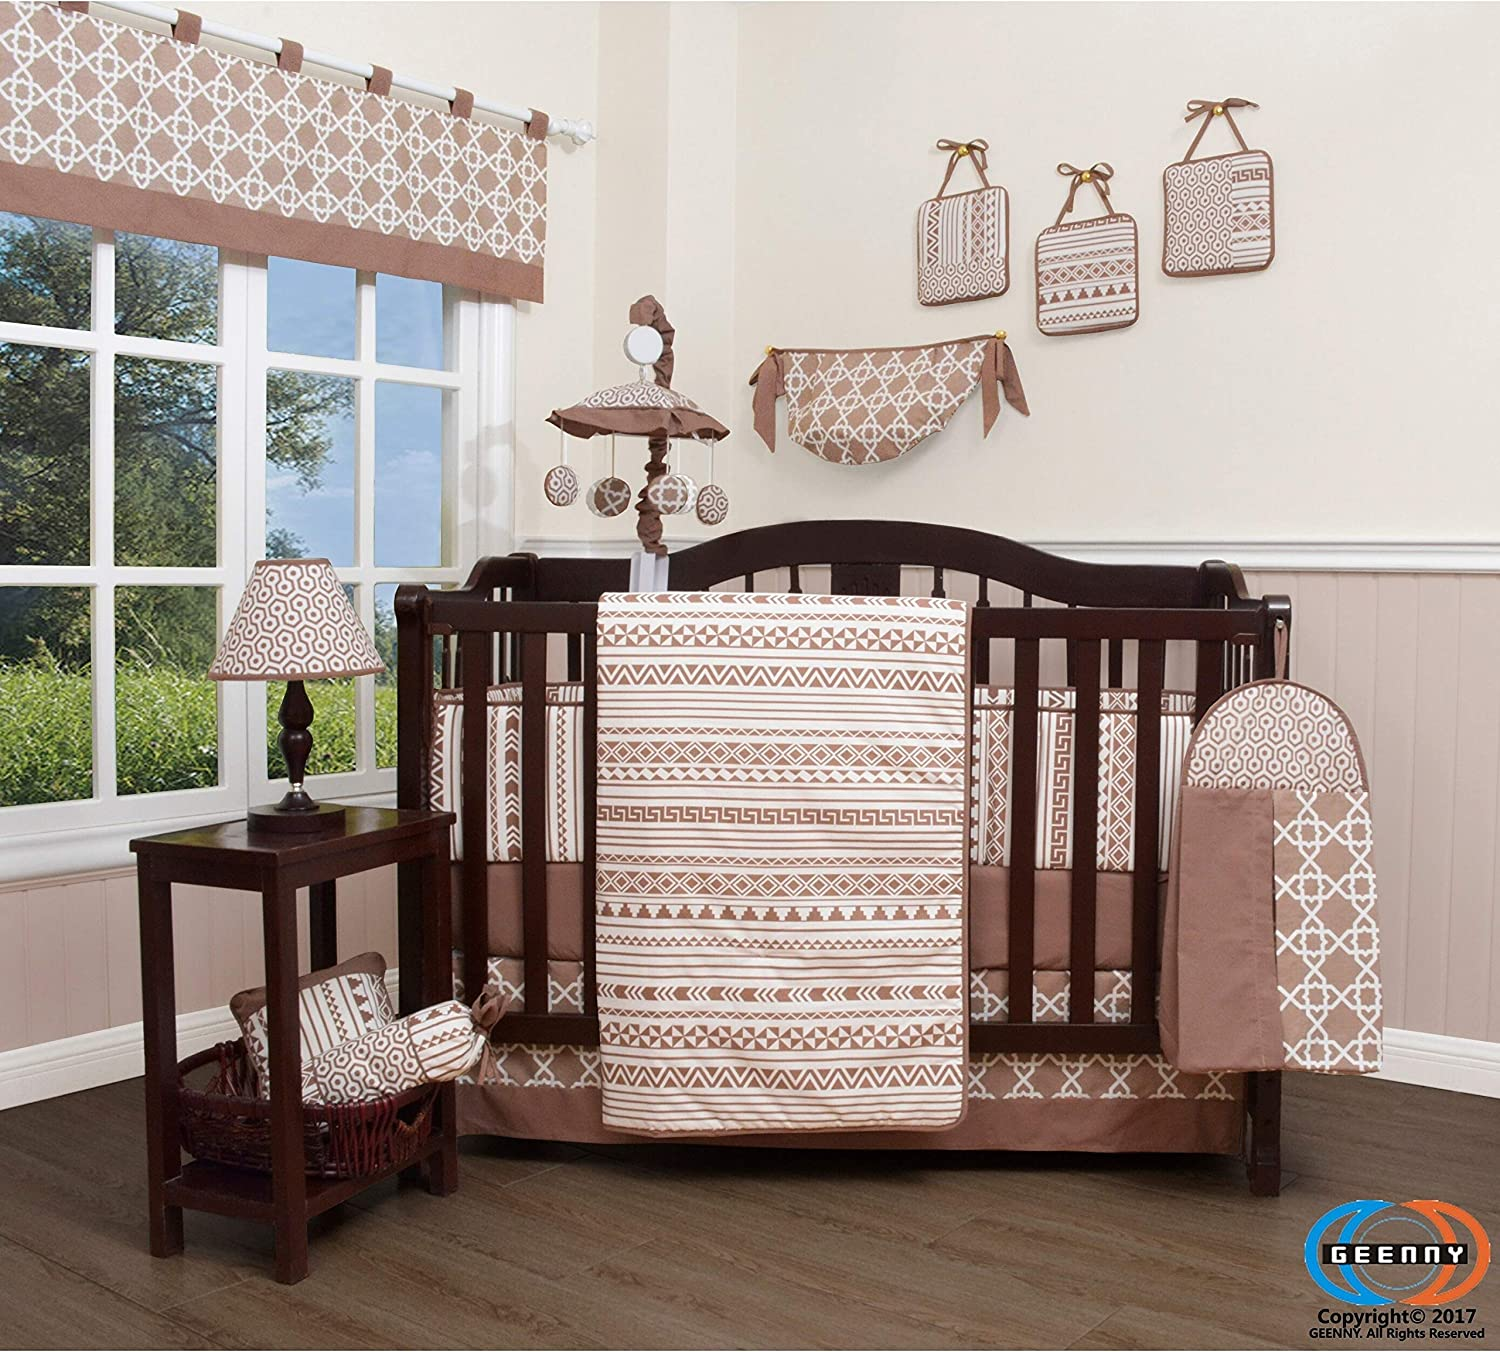 Brown Geometry 13 Piece Baby Nursery Crib Bedding Set Multi Color Embroidered Neutral Basic Cotton Blend 6